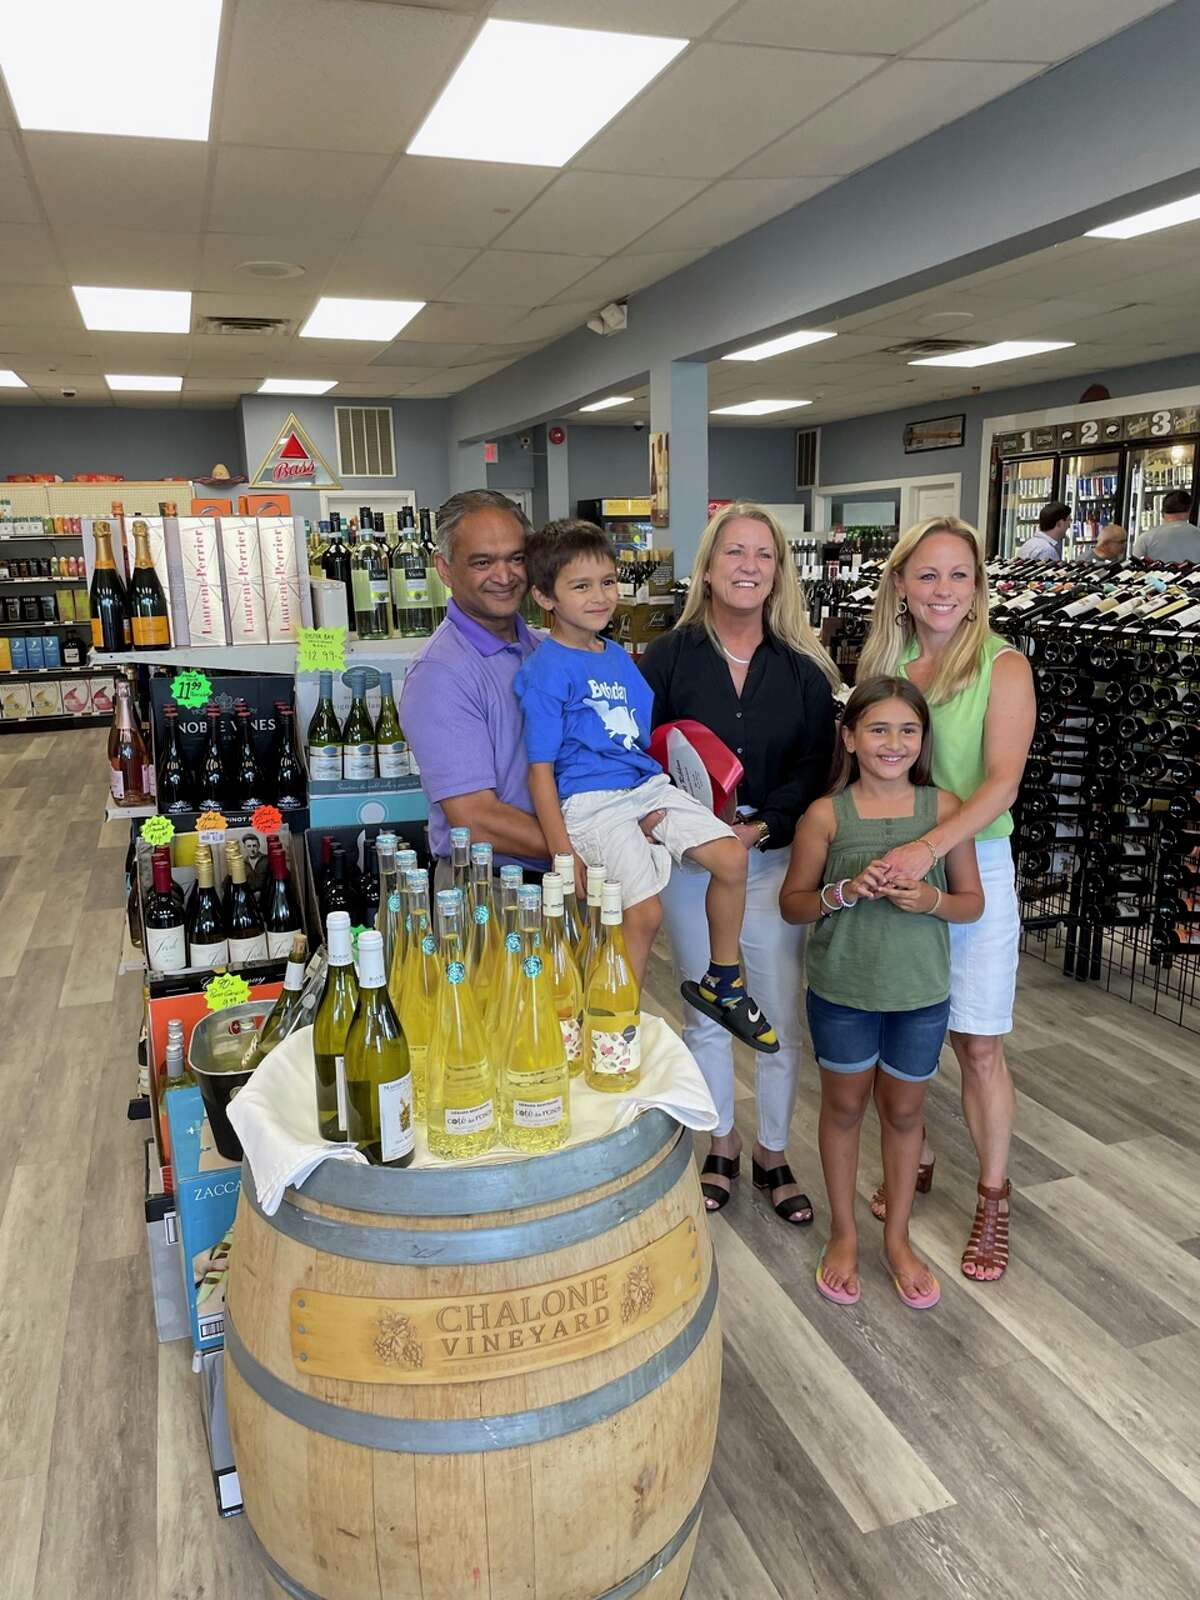 Joel Lall, owner of Higher Spirits in Fairfield, and his family.